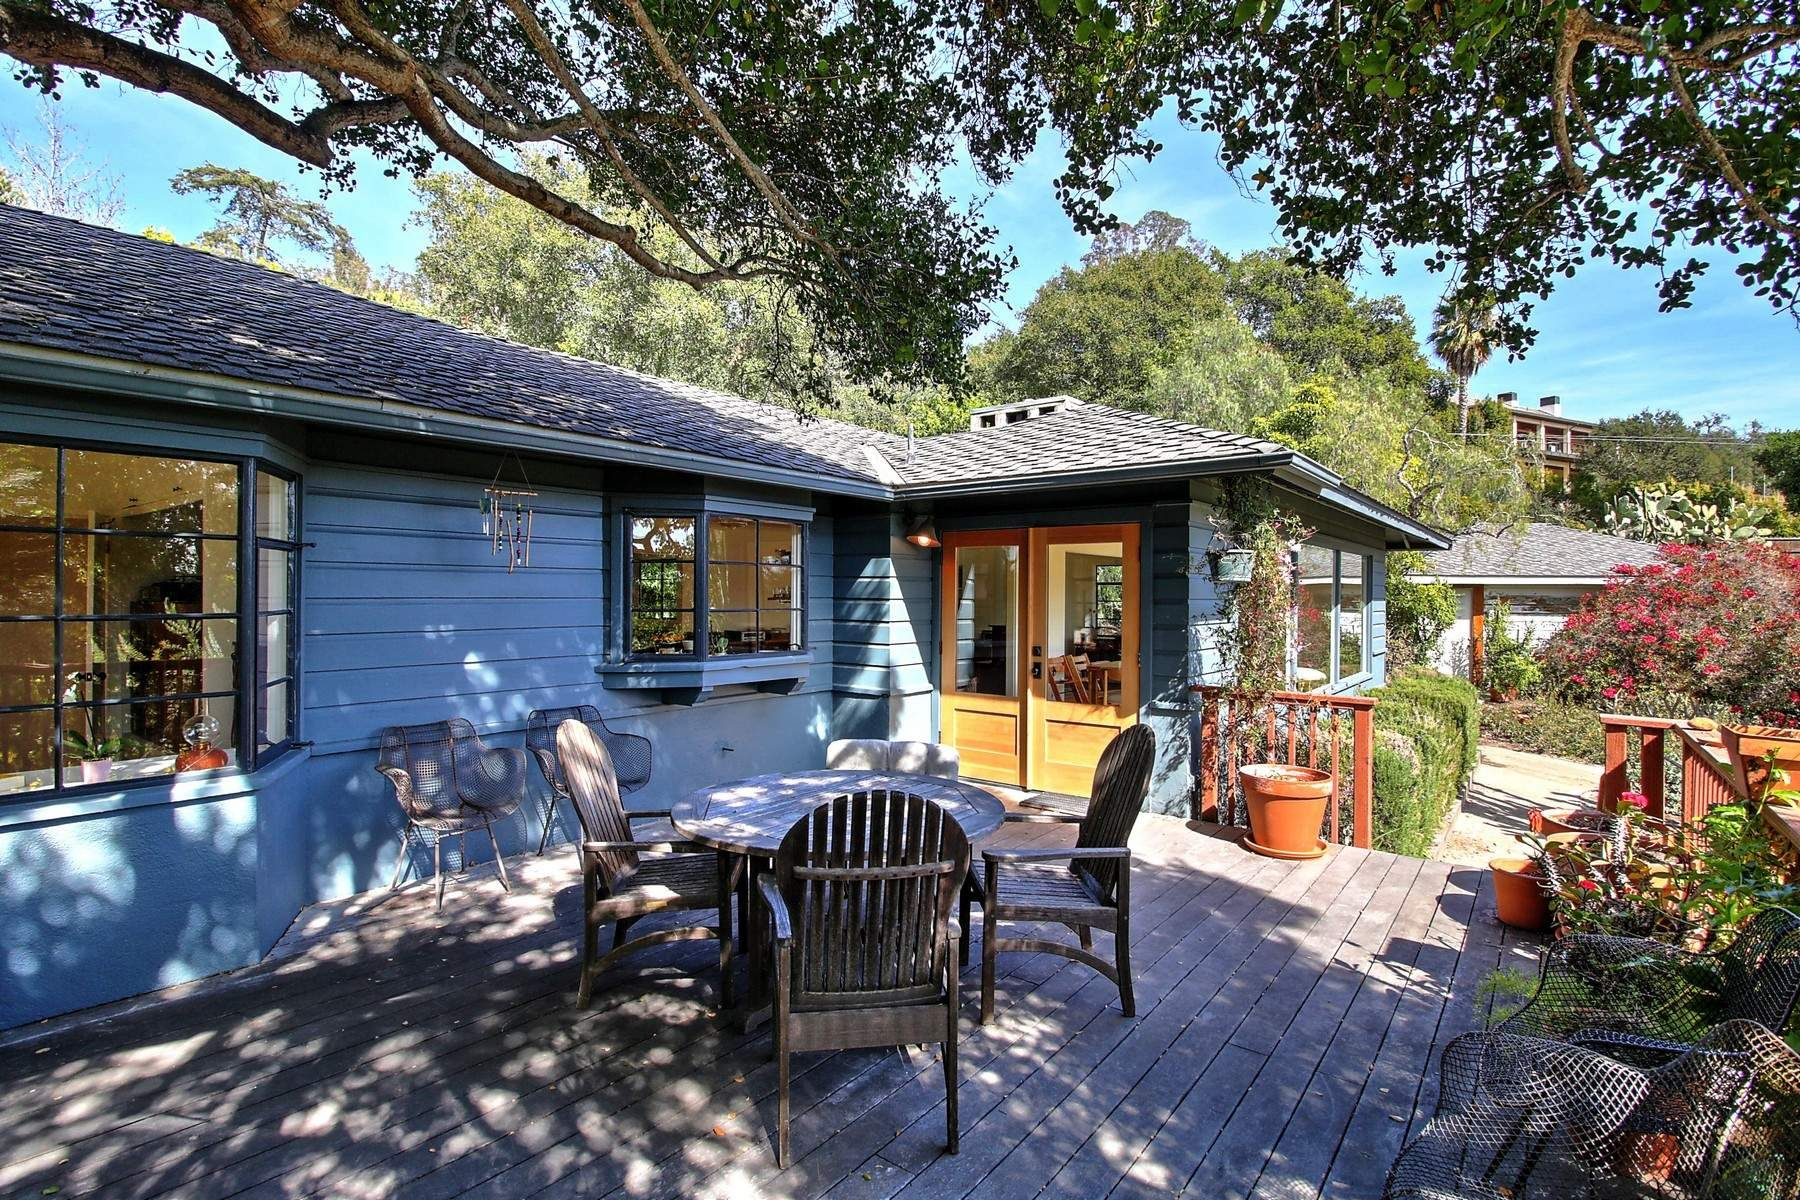 Single Family Home for Sale at Mid-Century Montecito Home 820 Alston Road, Santa Barbara, California, 93108 United States